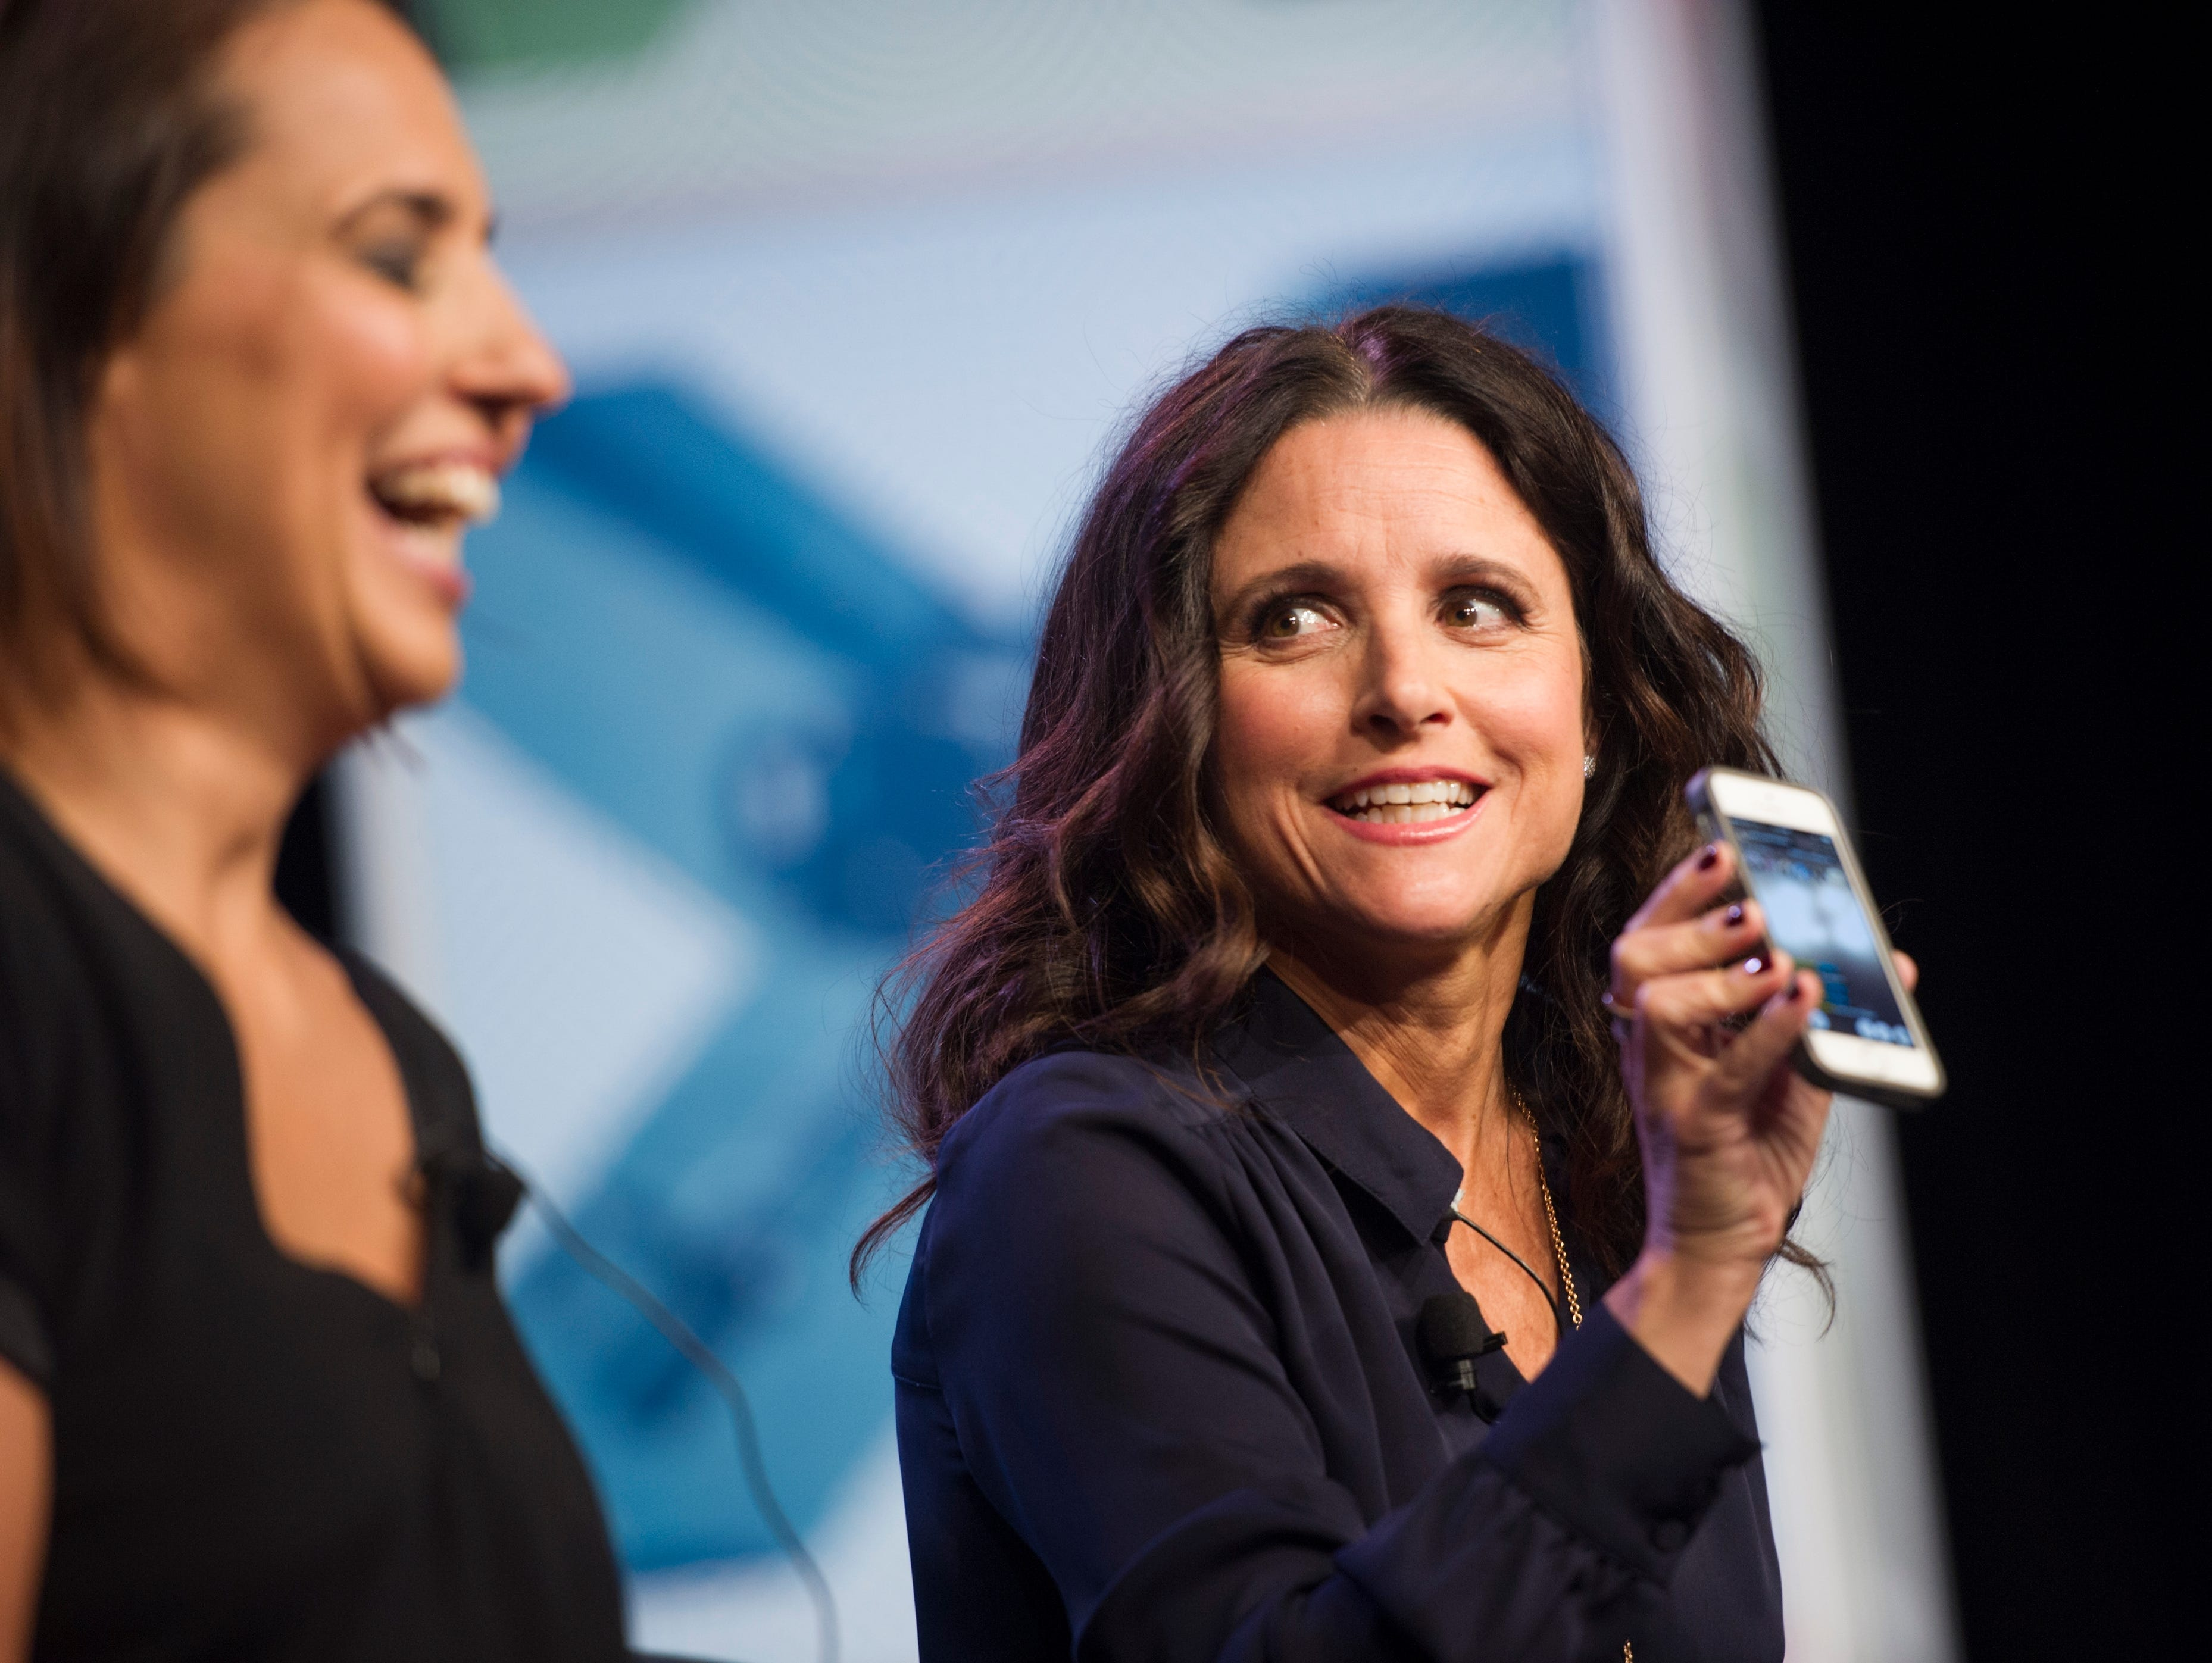 Actress Julia Louis-Dreyfus on stage with Anne Fulenwider, Editor in Chief, Marie Claire, while live feeding via the Meerkat app arriving for the SXSW panel